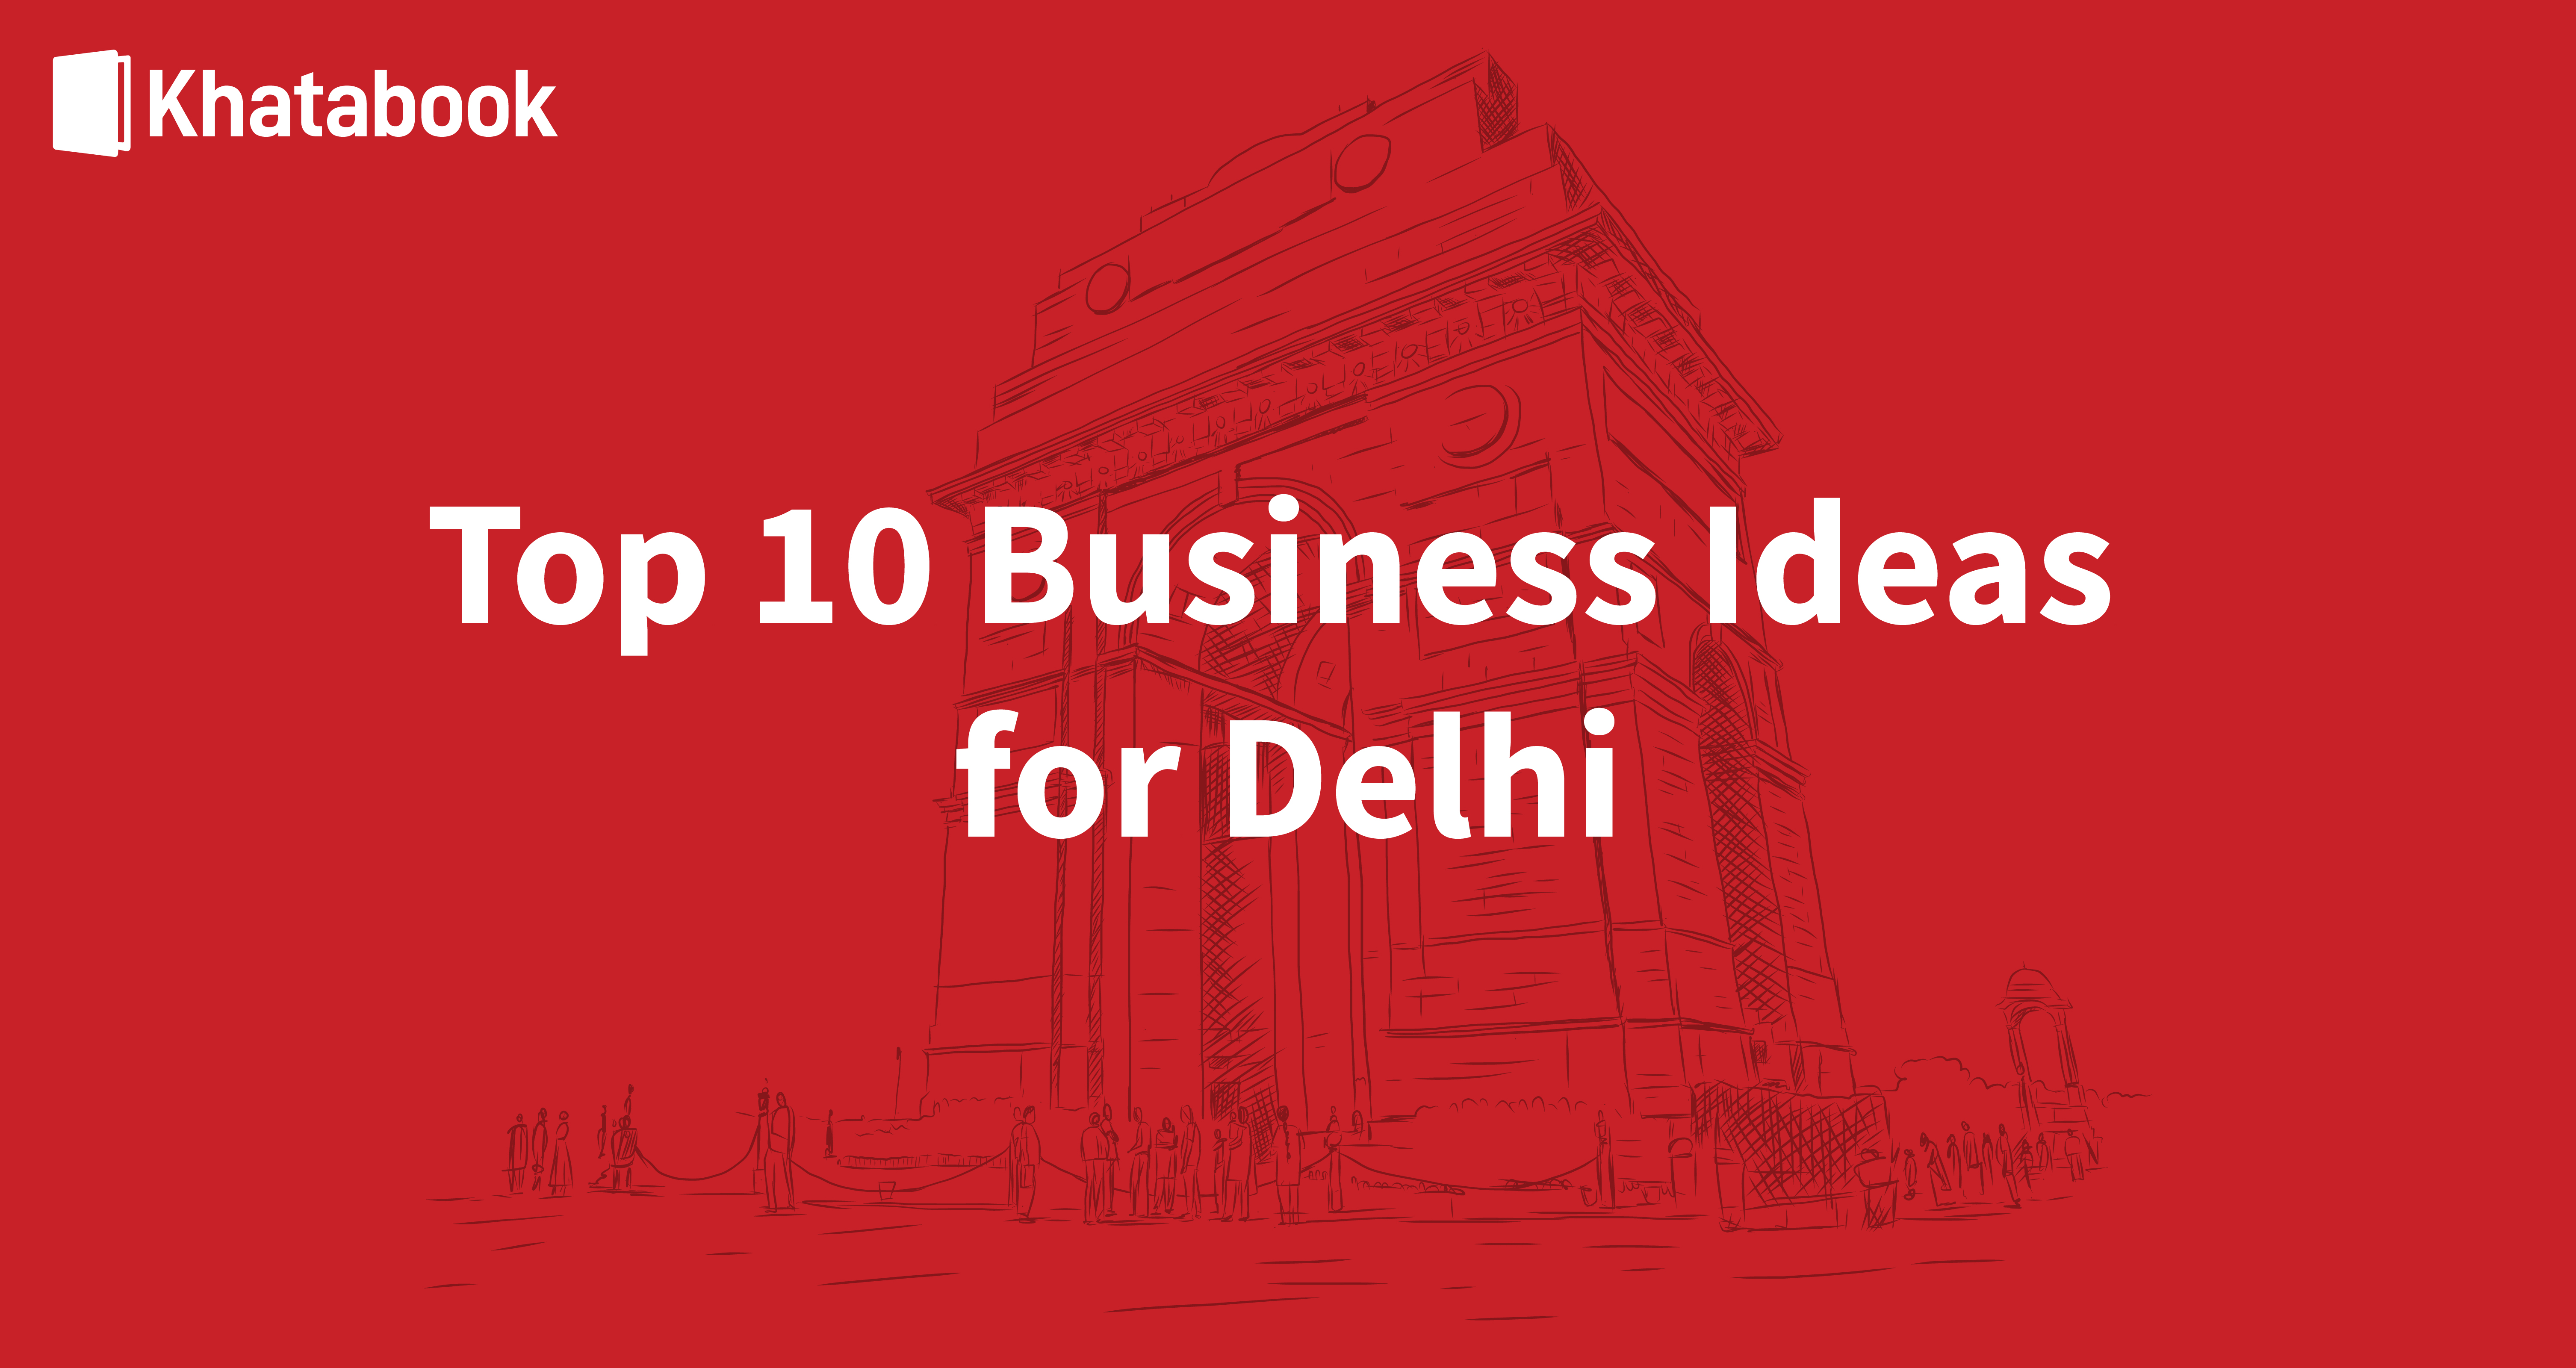 What Are The Top 10 Business Ideas in Delhi?